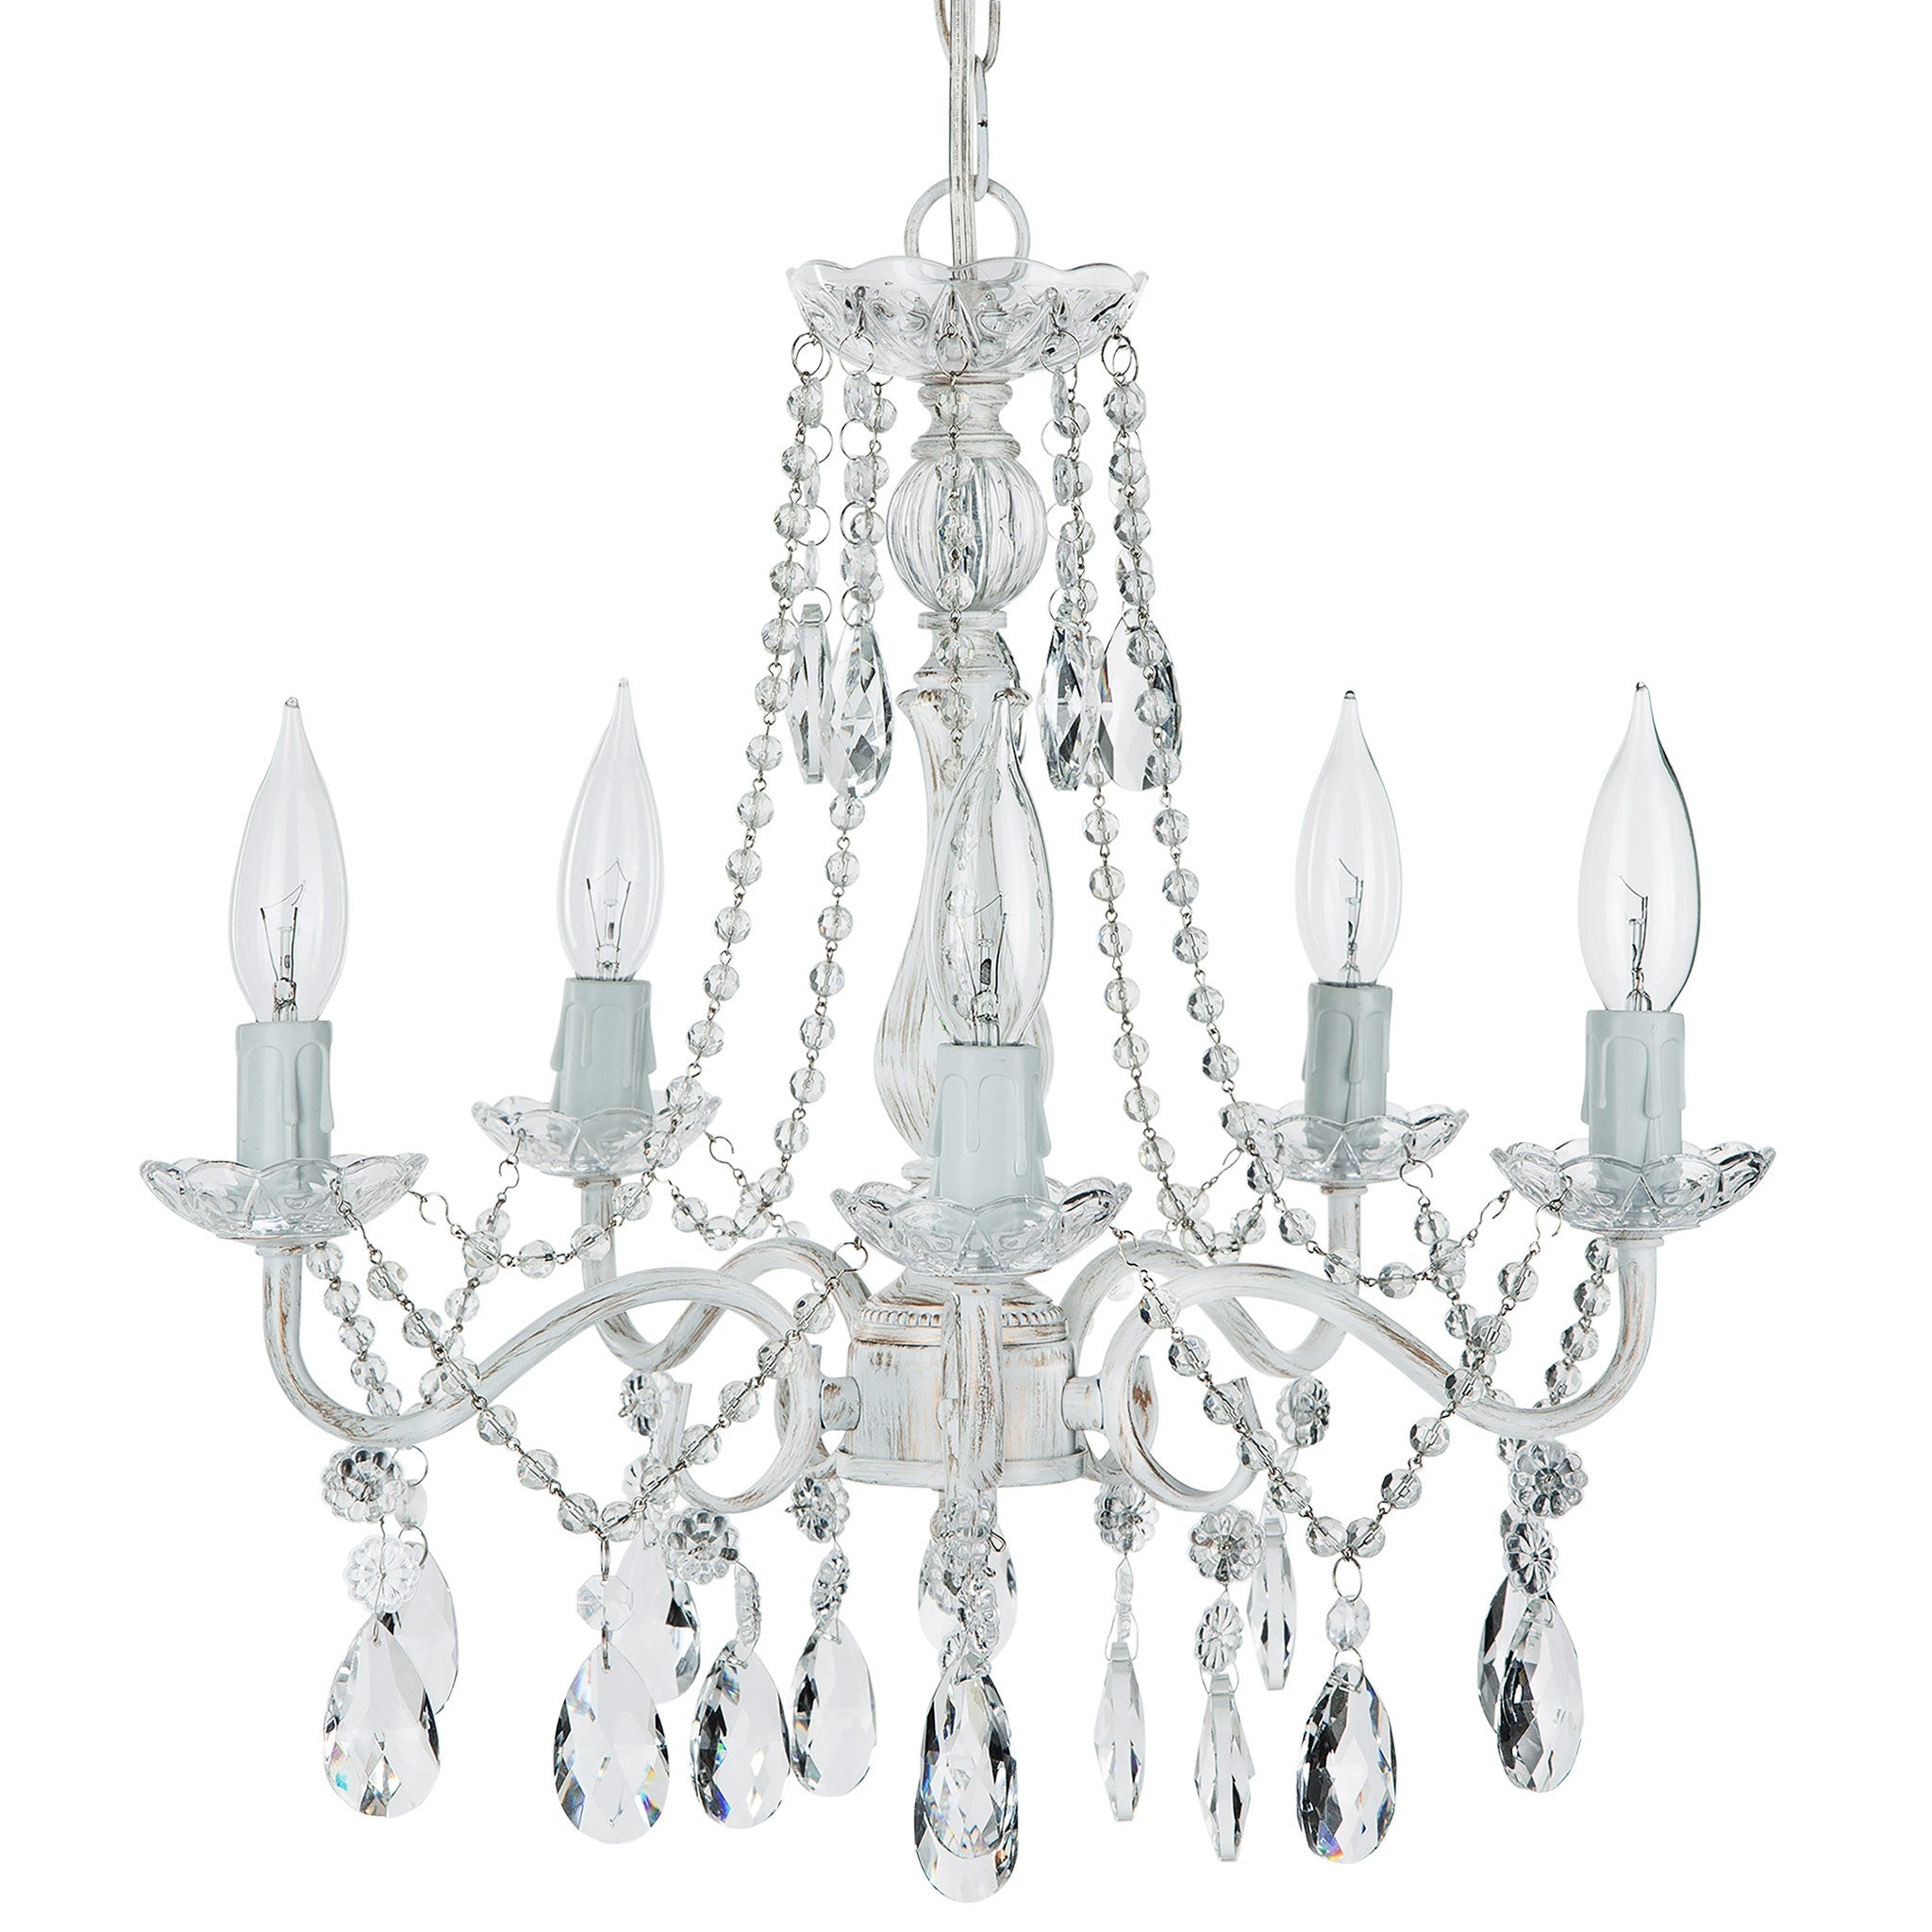 Amalfi Decor 5 Light Swoop Arm Crystal Plug-In Chandelier (Whitewashed) | Wrought Iron Frame with Glass Crystals